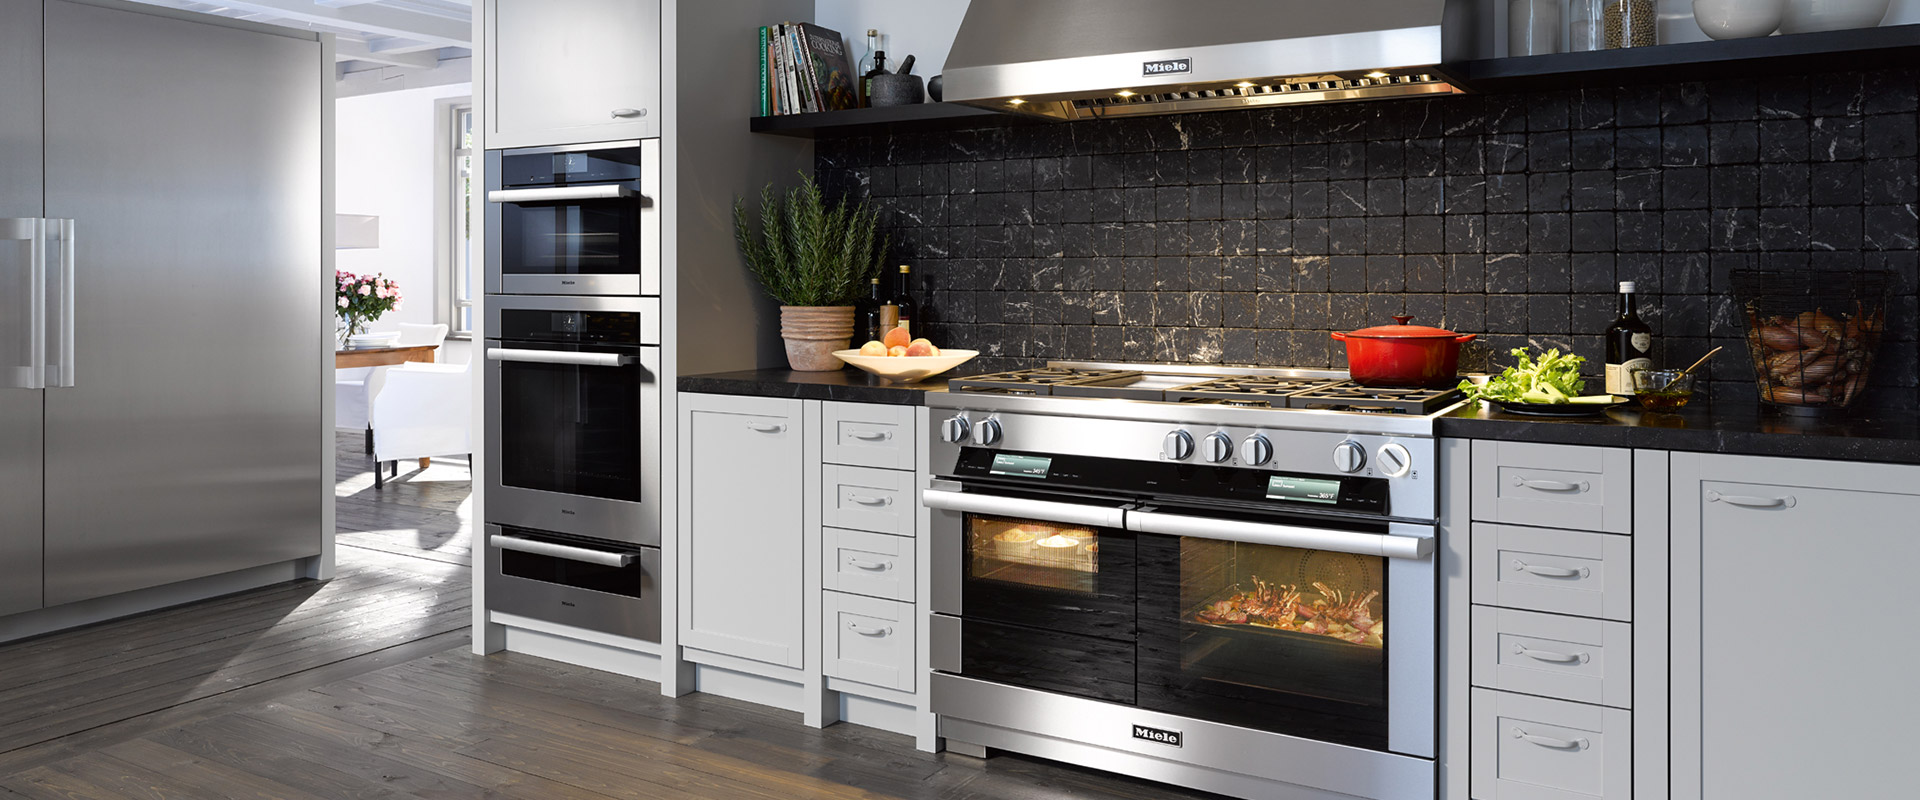 Call 858 Appliance San Diego S Best Appliance Repair Service